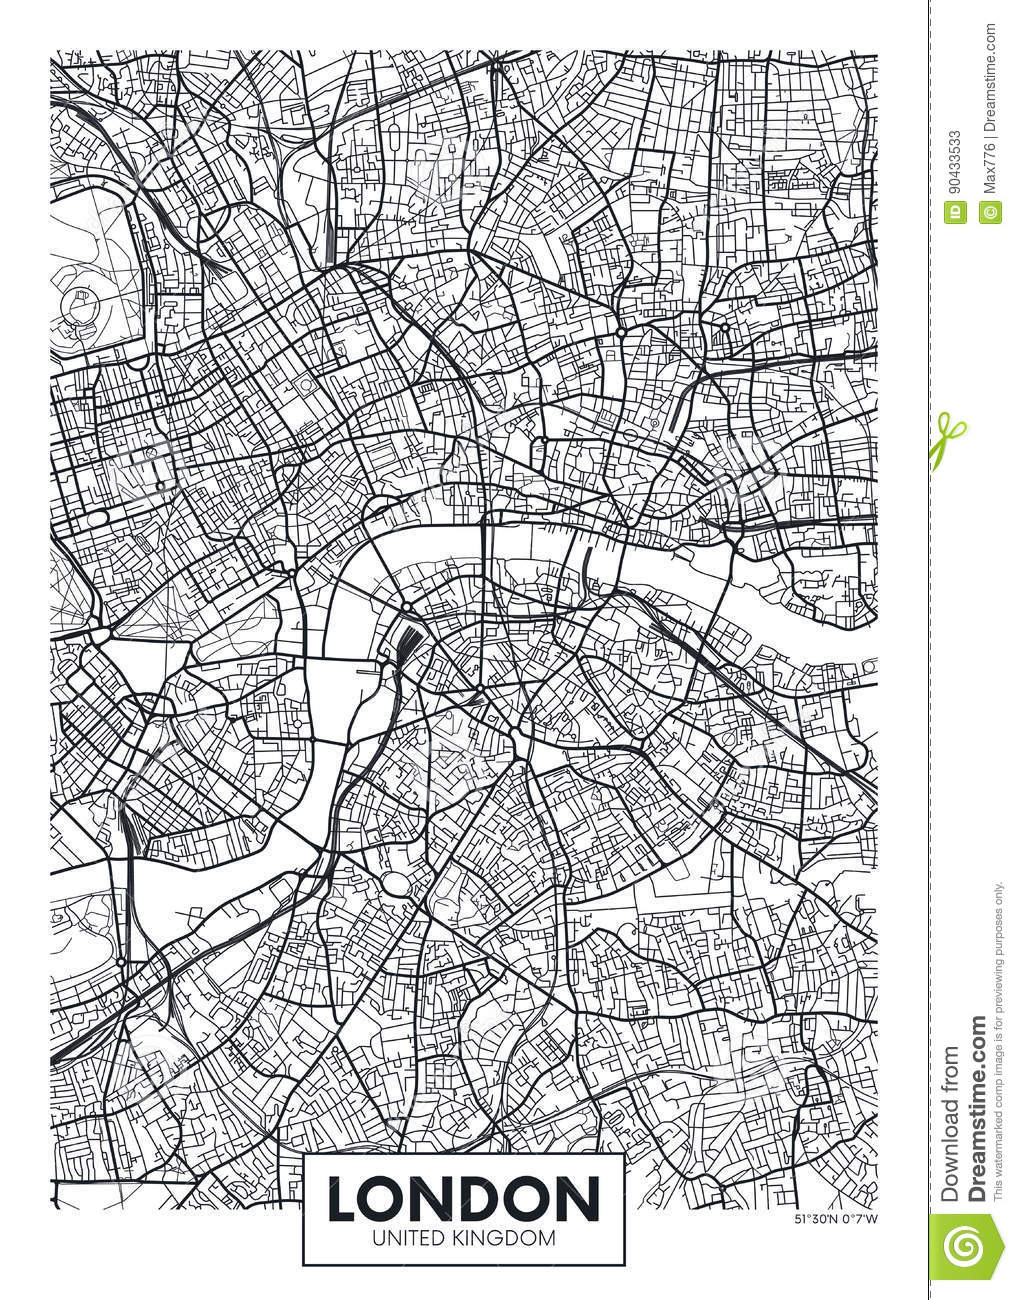 Vector Poster Map City London Stock Vector - Illustration of ... on recycling posters, planning posters, city design posters, city mural posters, radio posters, golf posters, vintage city posters, muenchen city posters, train posters, koln city posters, statistics posters, library posters, water posters, clothing posters, vision posters, city neighborhood posters, city travel posters, culture posters, home posters,